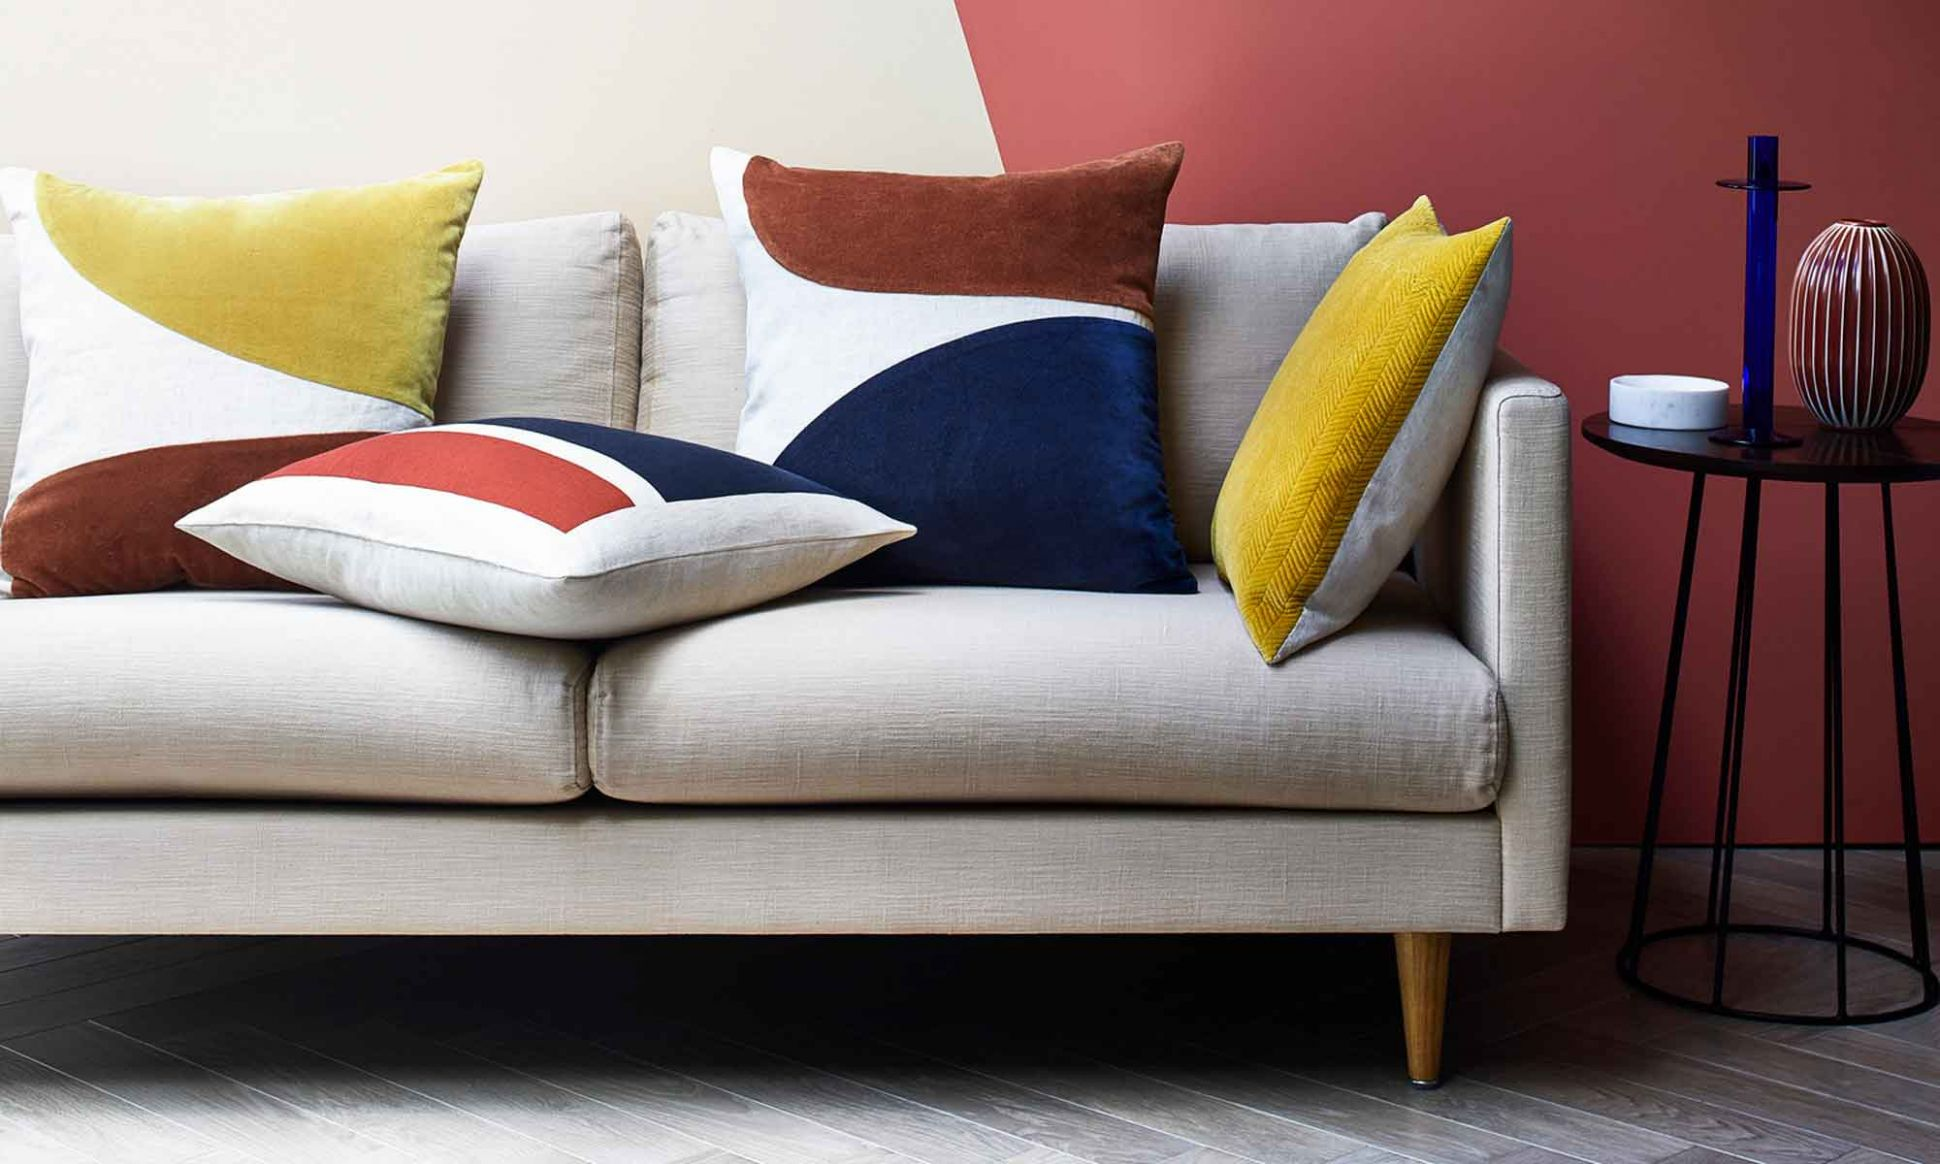 Home decor trends 11 – the key looks to update interiors